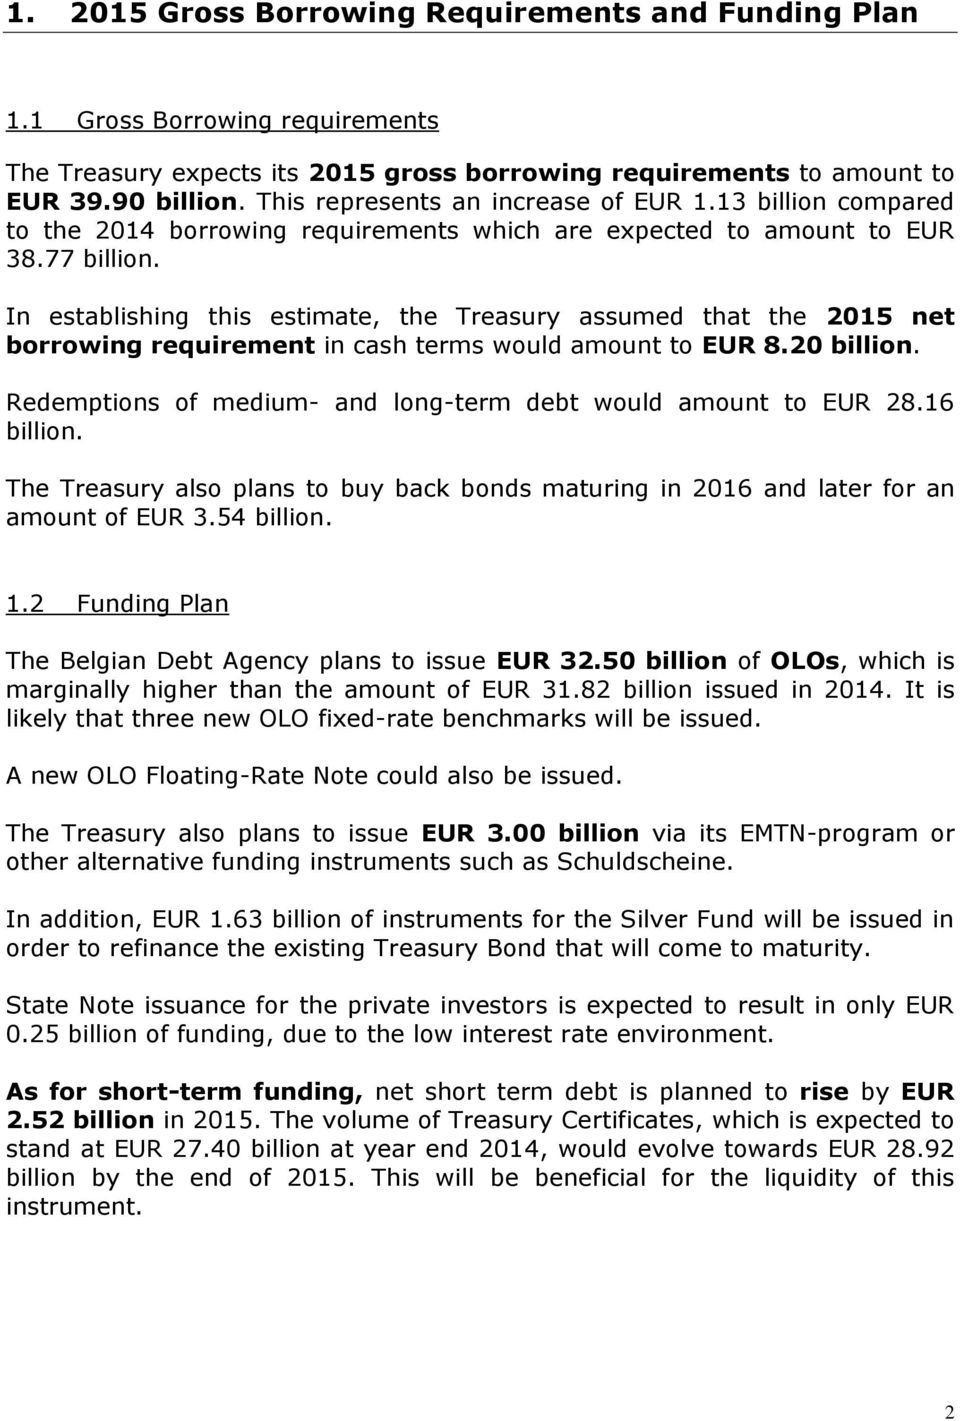 In establishing this estimate, the Treasury assumed that the 2015 net borrowing requirement in cash terms would amount to EUR 8.20 billion.